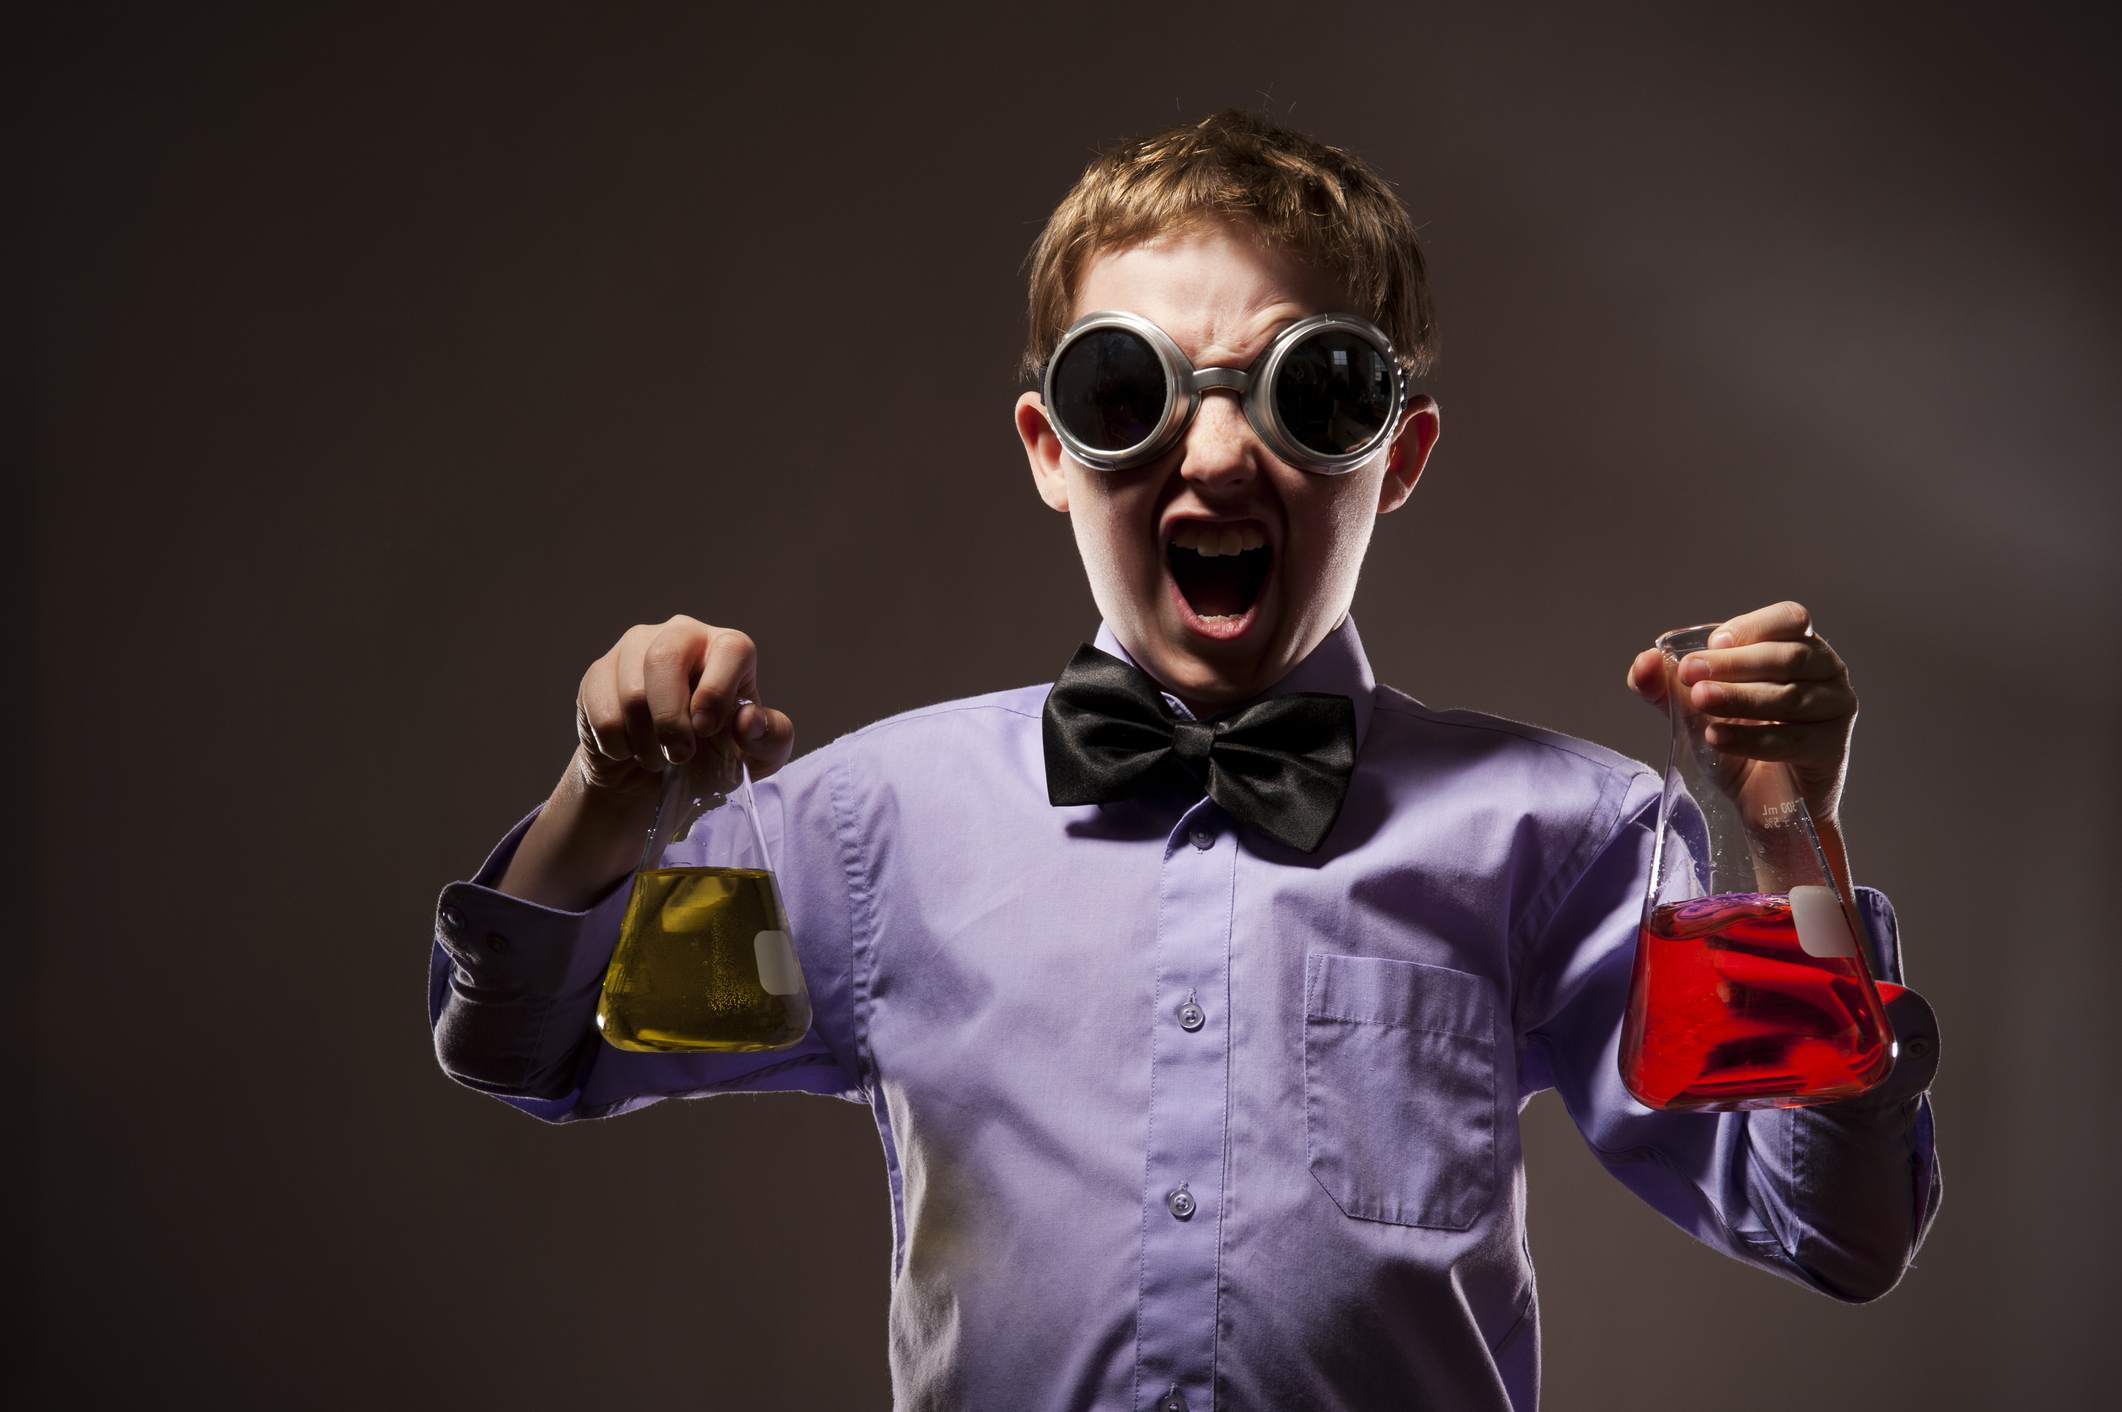 young boy as a mad scientist